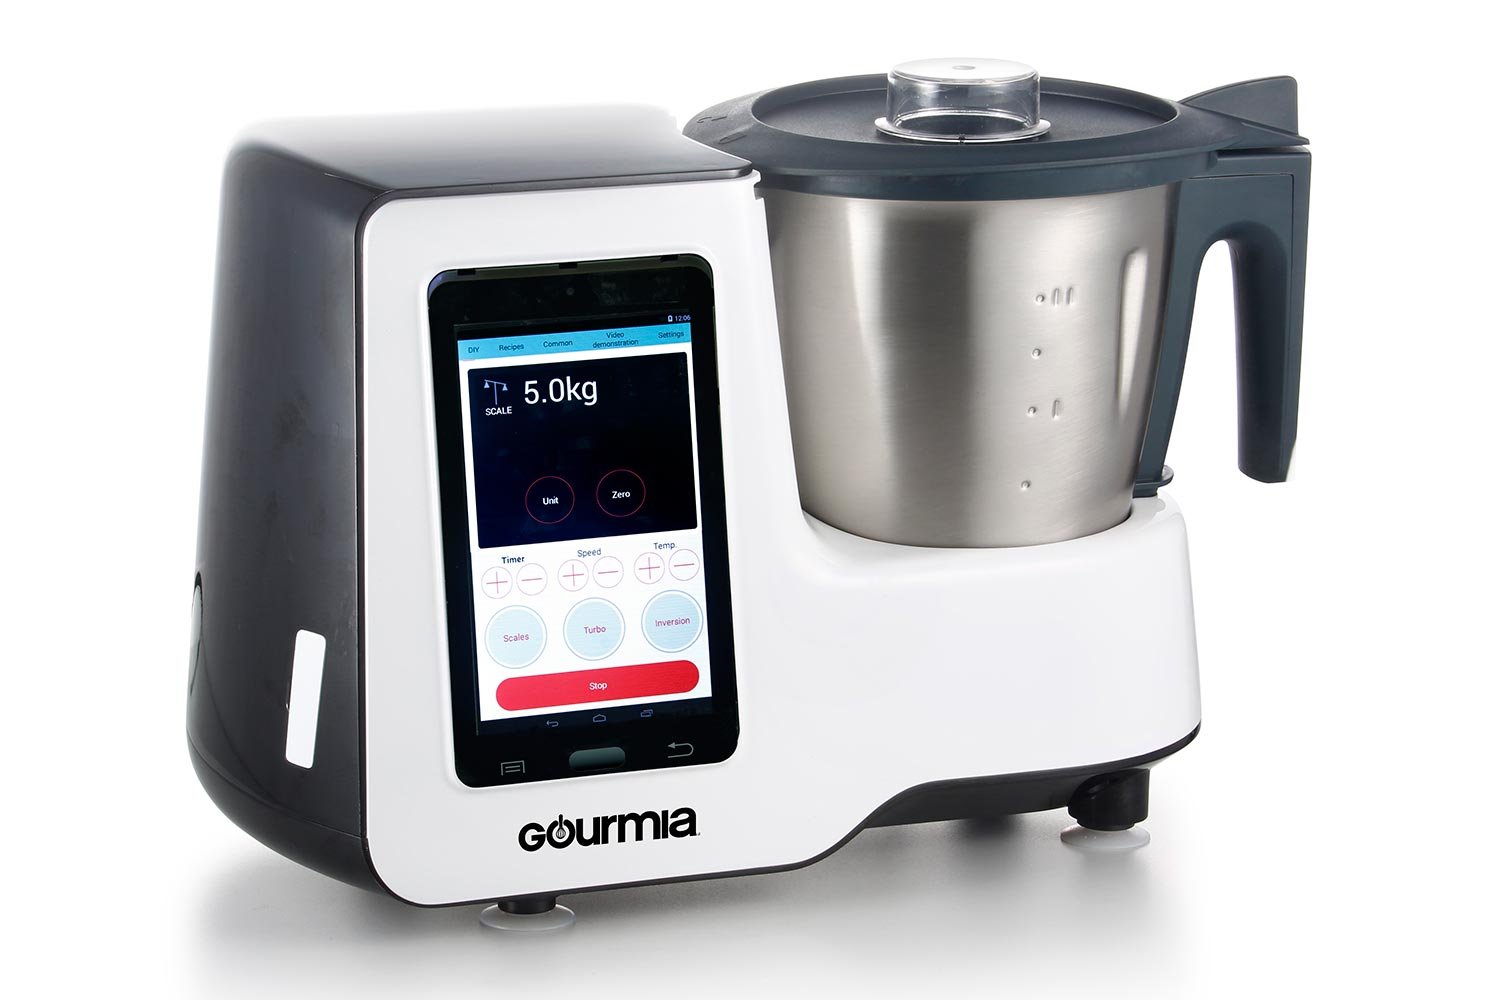 Gourmia s coffee maker will make any kind of single-cup capsule you throw at it